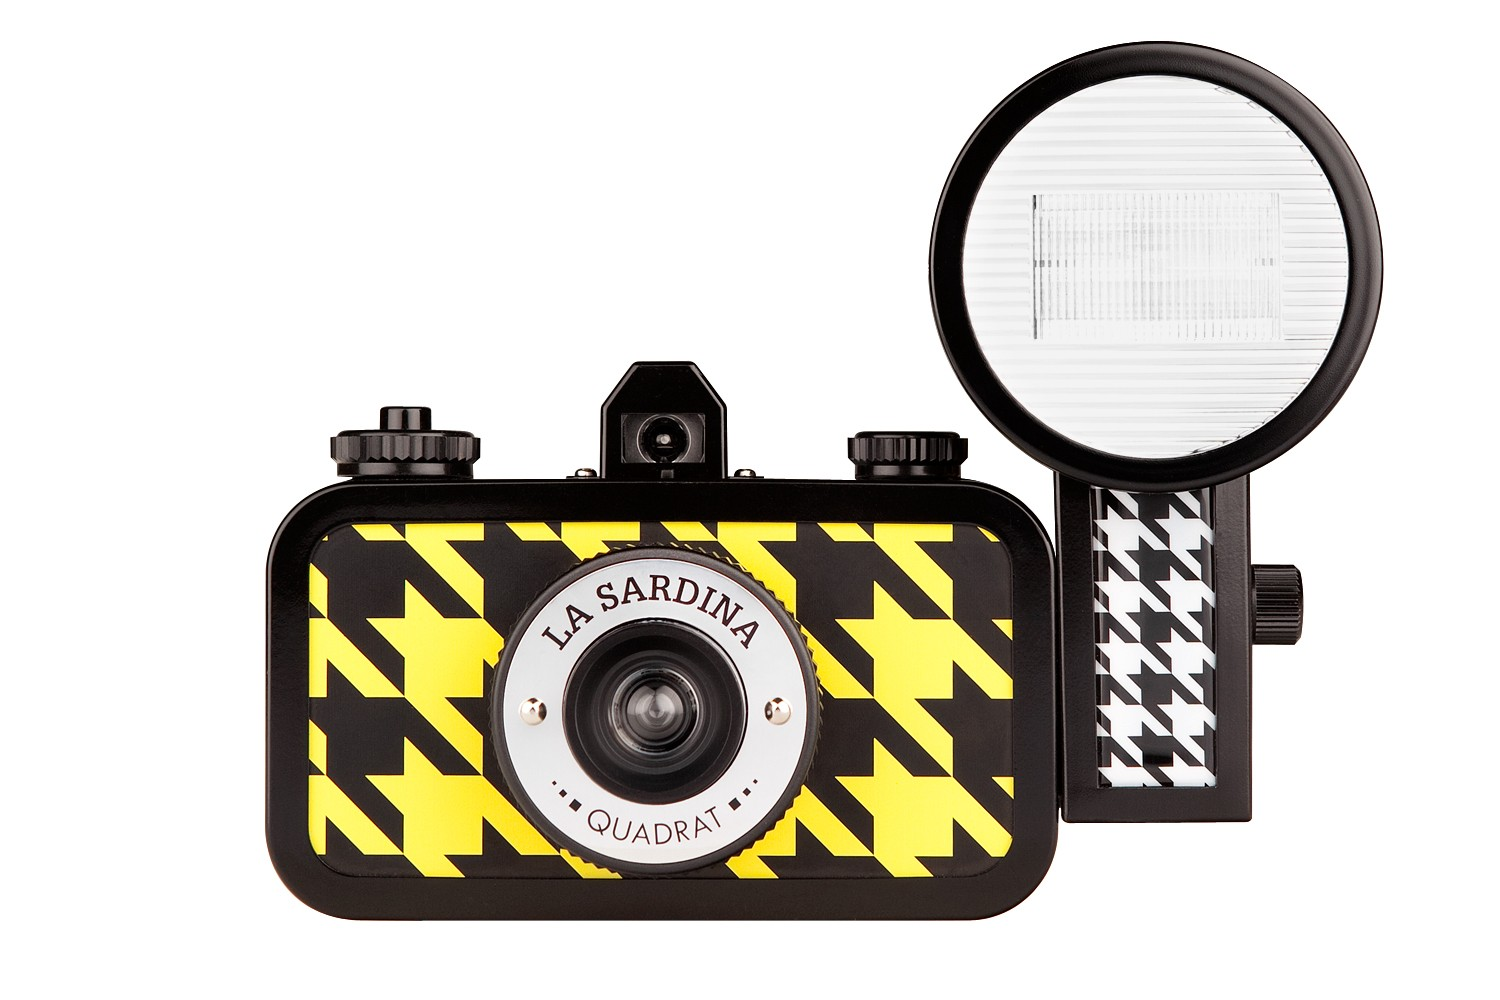 La Sardina and Flash Quadrat